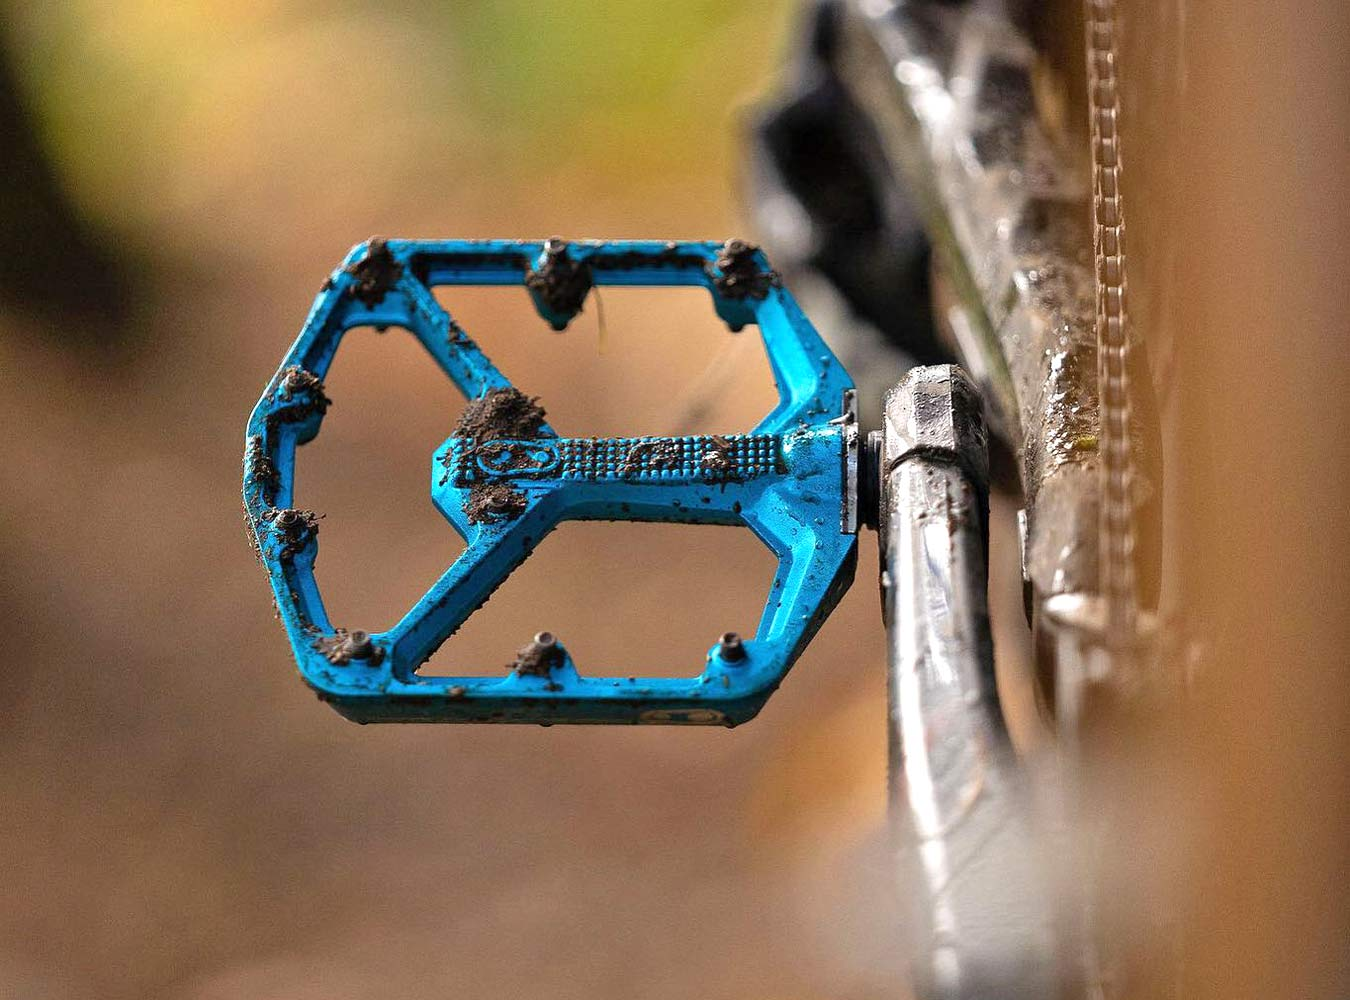 Crankbrothers Stamp 7 platform flat pedals in Electric Blue